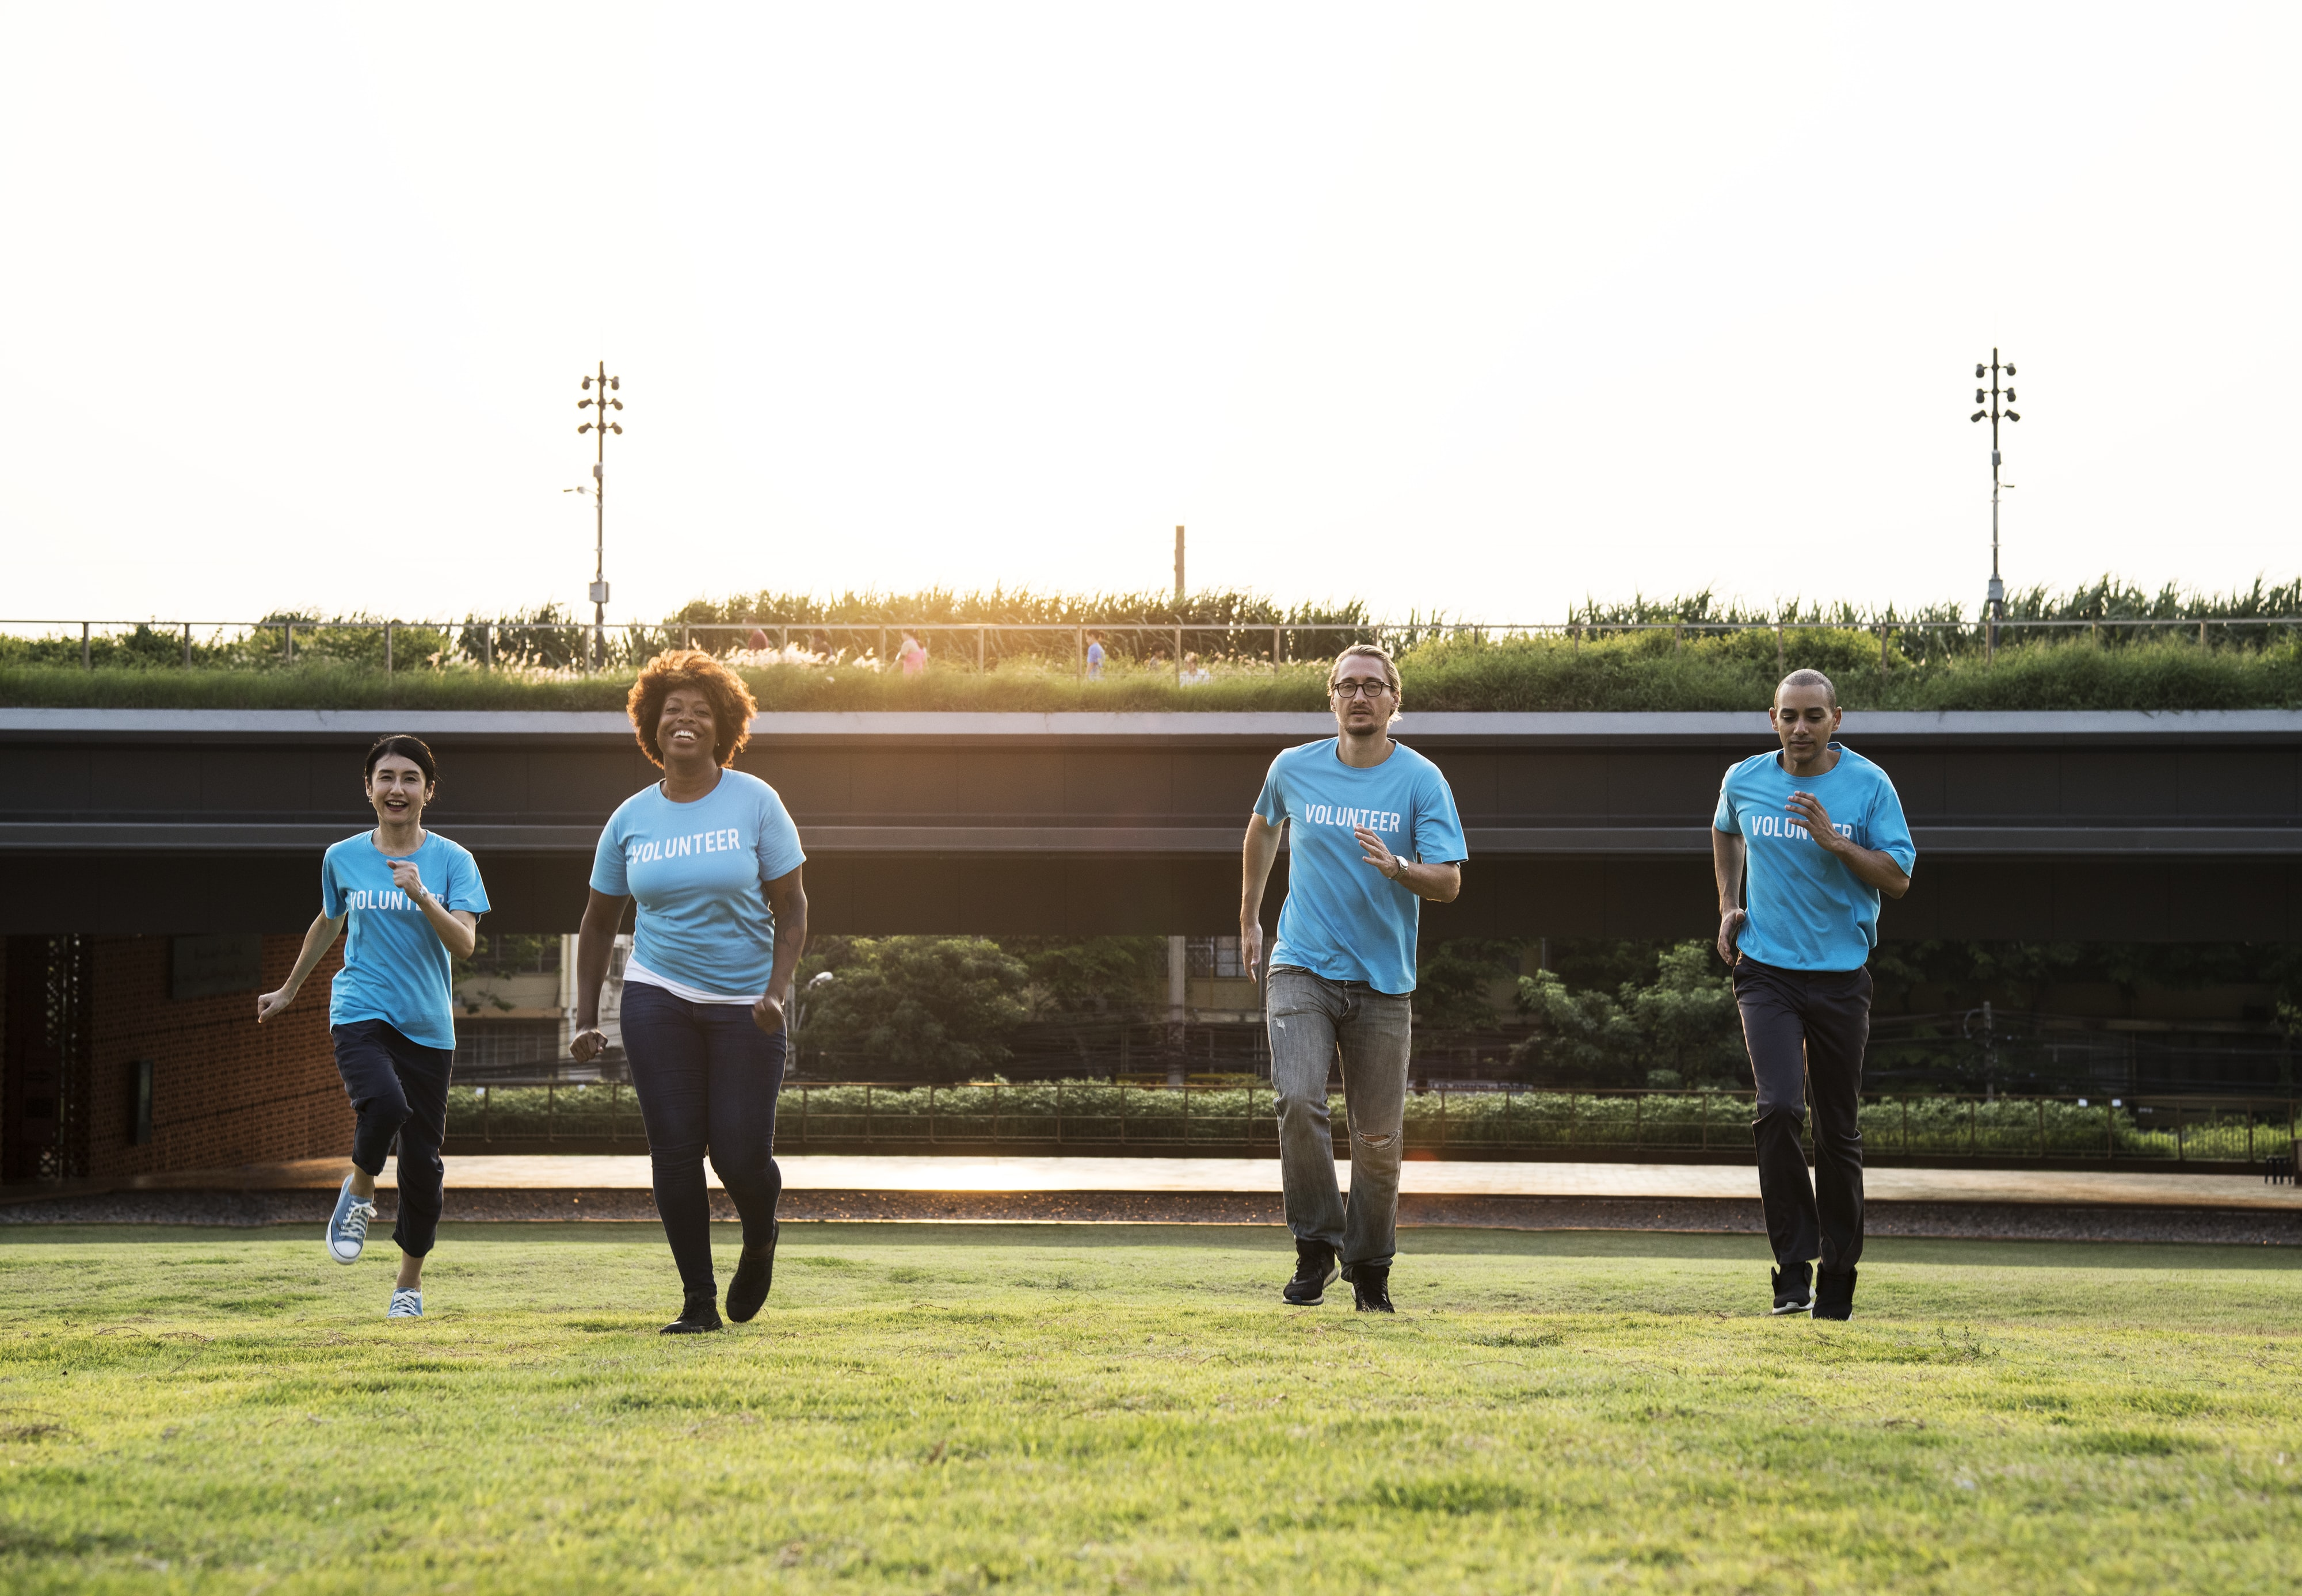 four people wearing blue shirts running on grass field